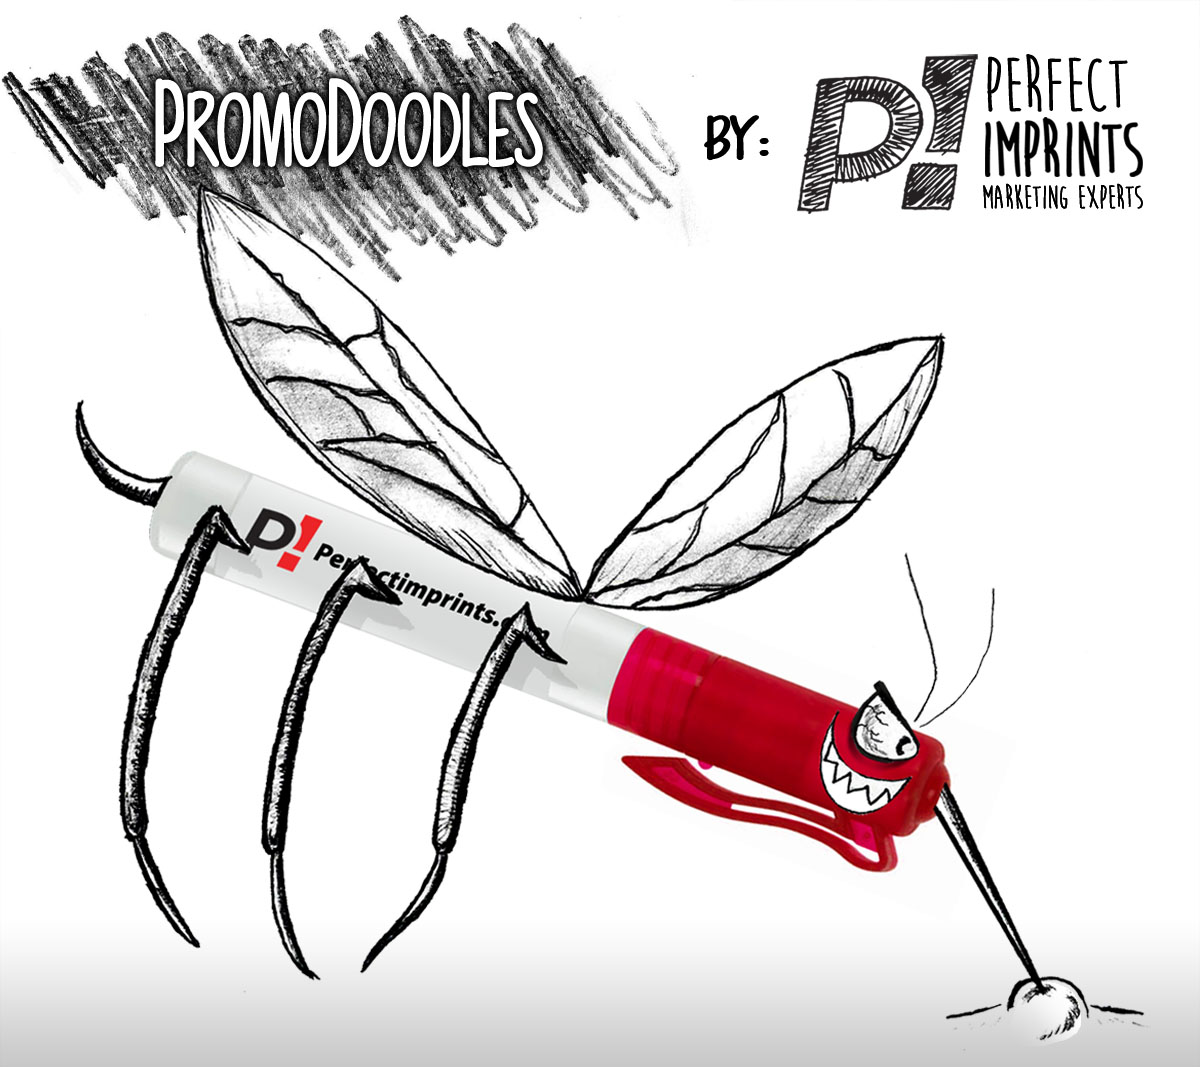 Promotional Insect Repellent Pen Sprayer - PromoDoodles by Perfect Imprints